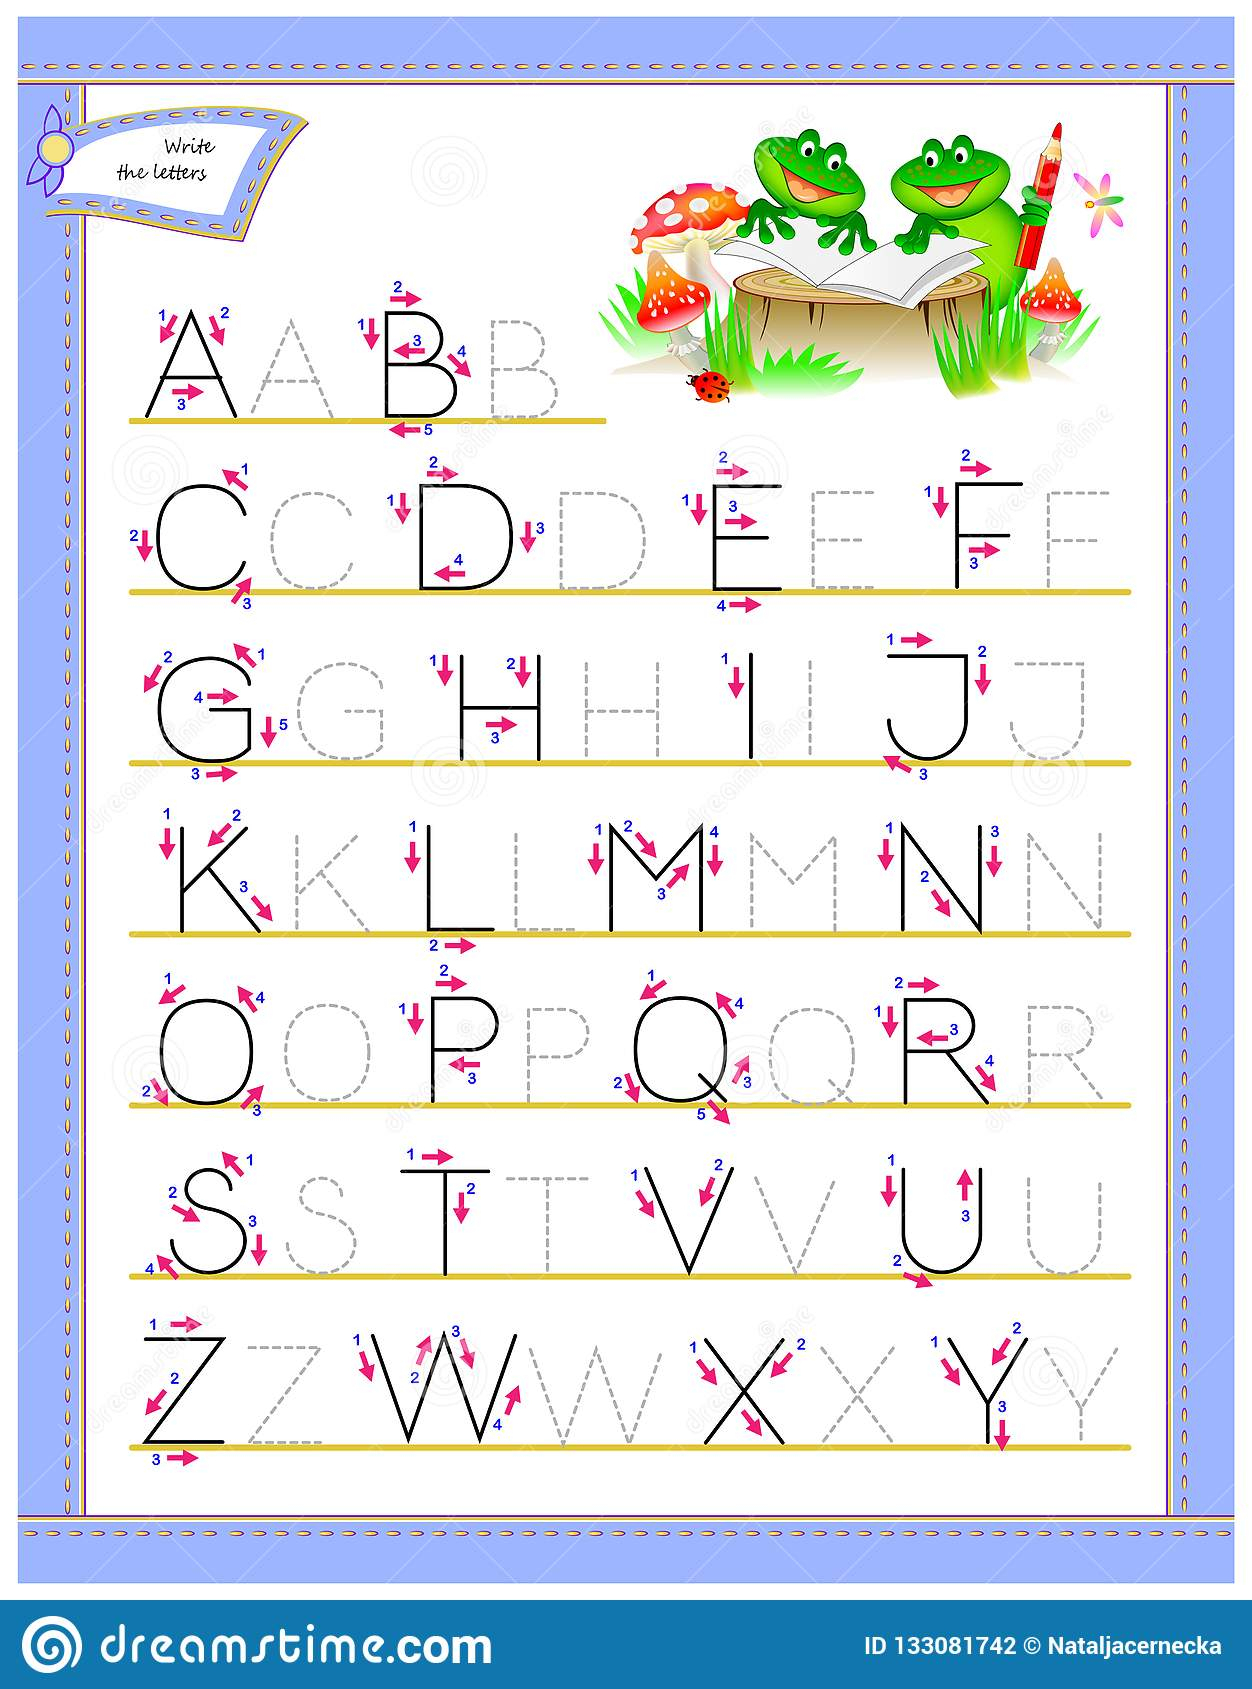 Tracing Abc Letters For Study English Alphabet. Worksheet pertaining to Tracing English Letters